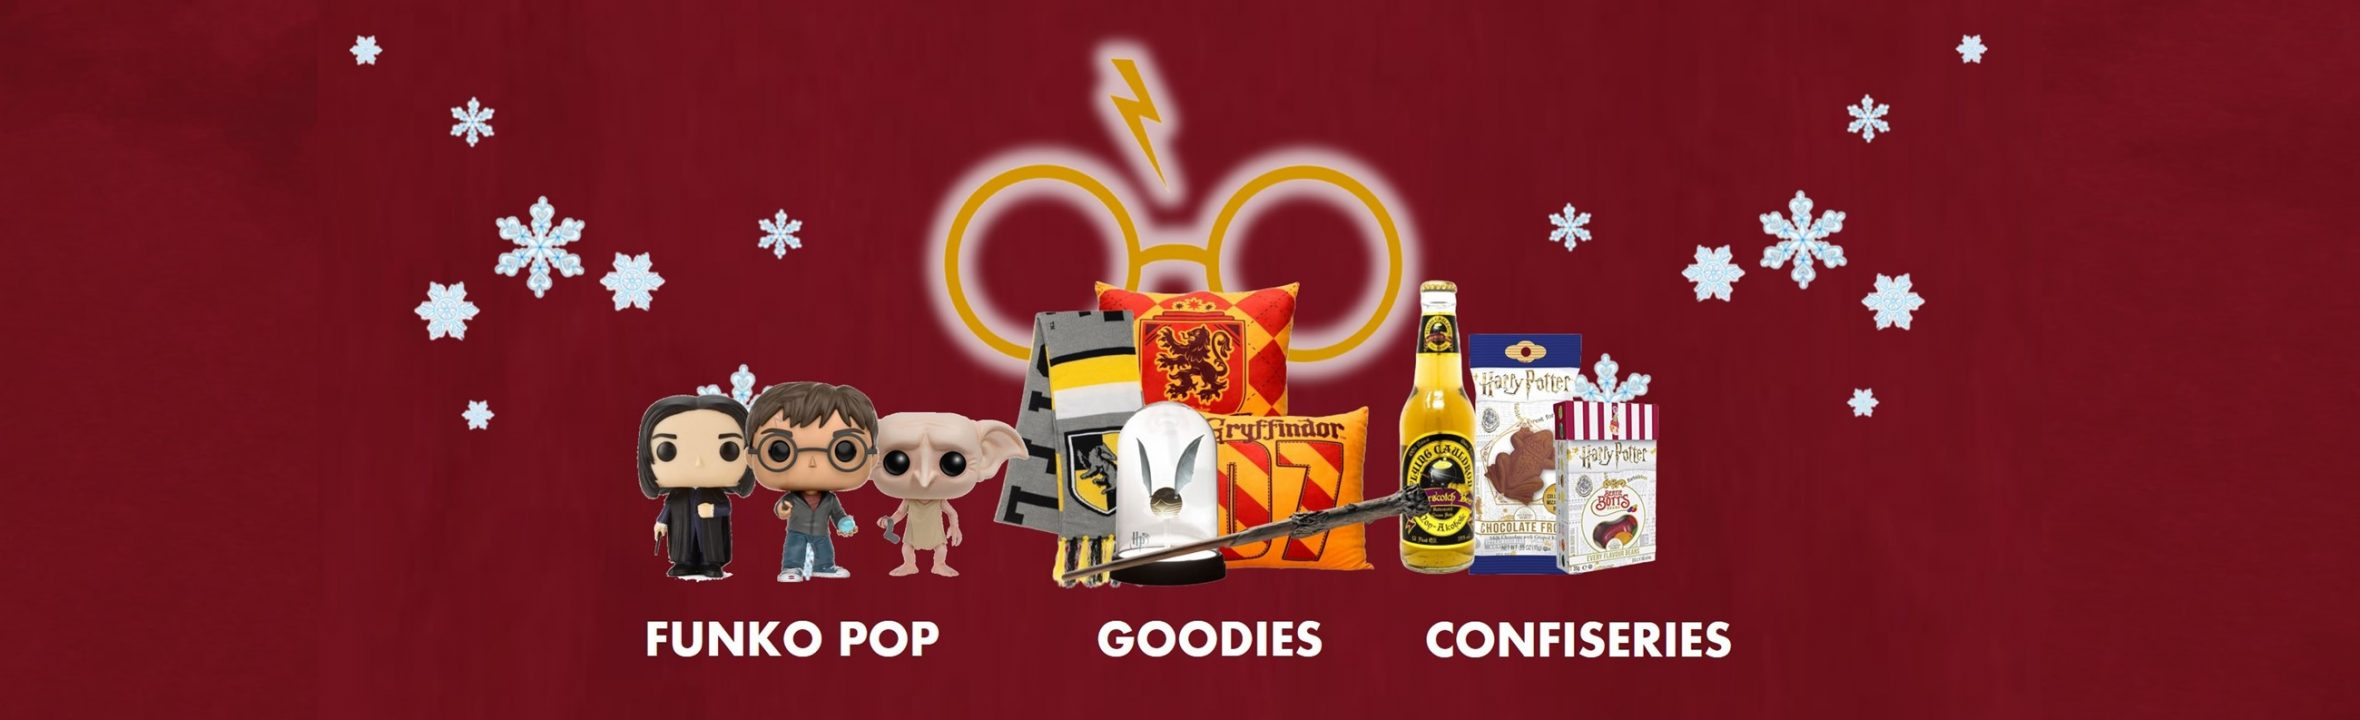 Boutique specialiste Harry Potter goodies figurines et funko pop